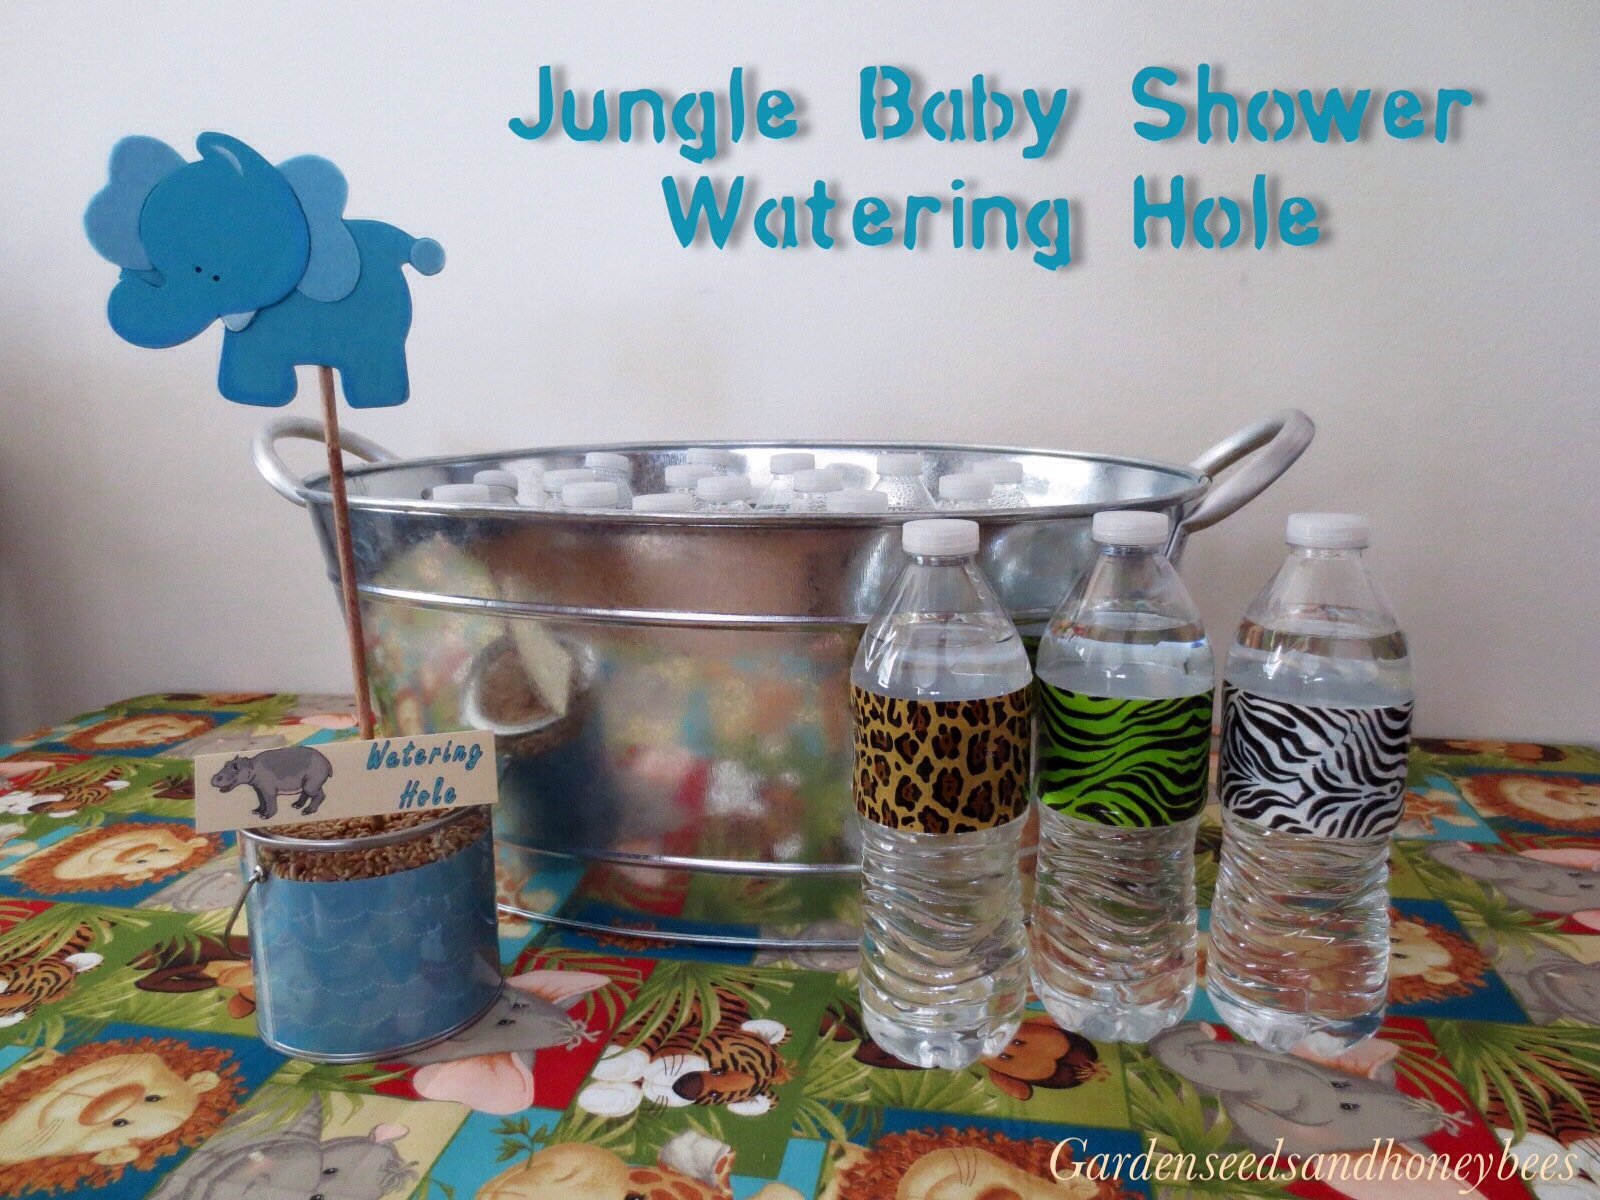 Jungle Baby Shower Watering Hole Garden Seeds and Honey Bees